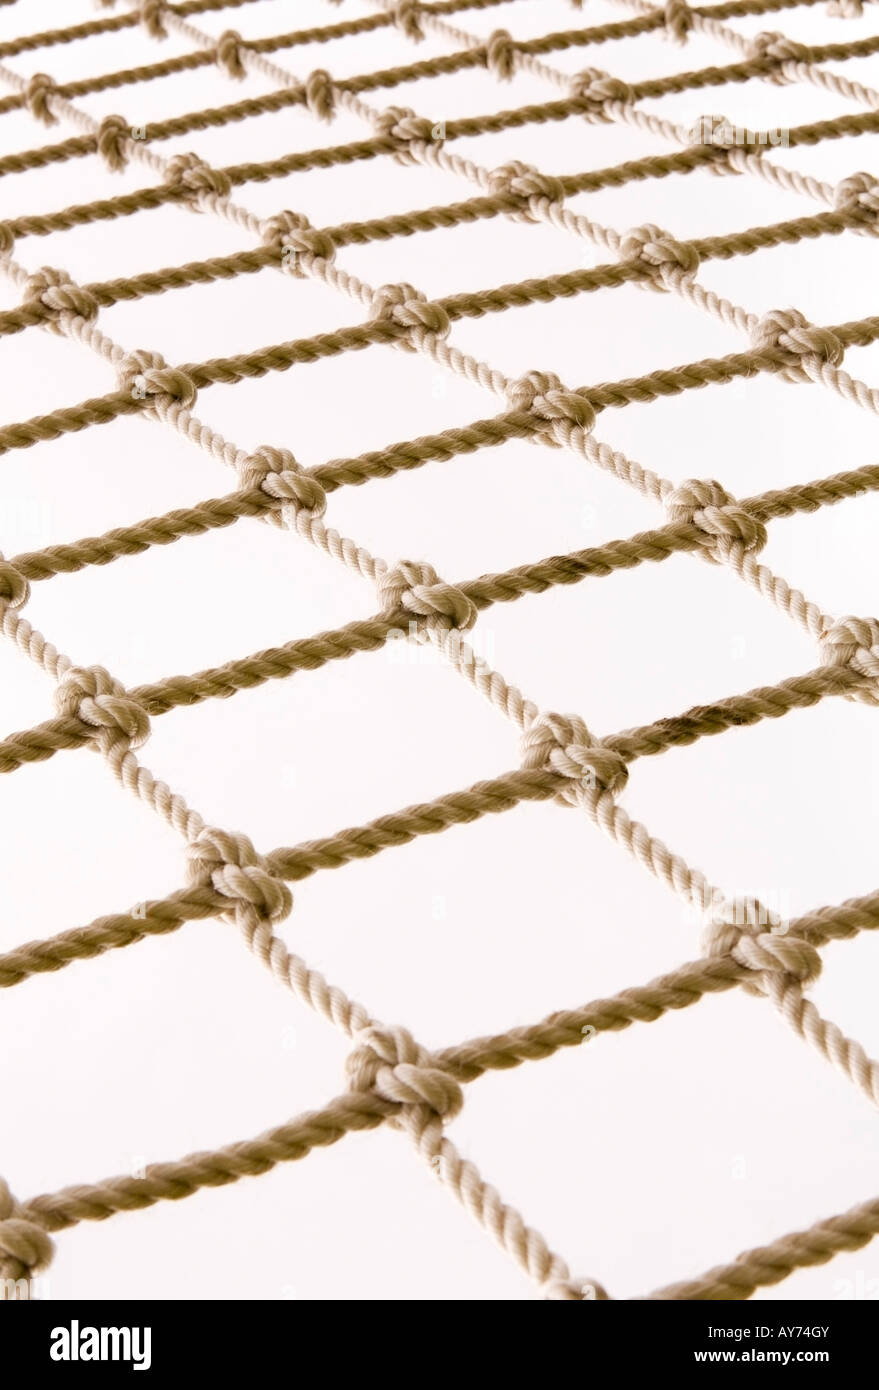 Knotted rope netting - Stock Image